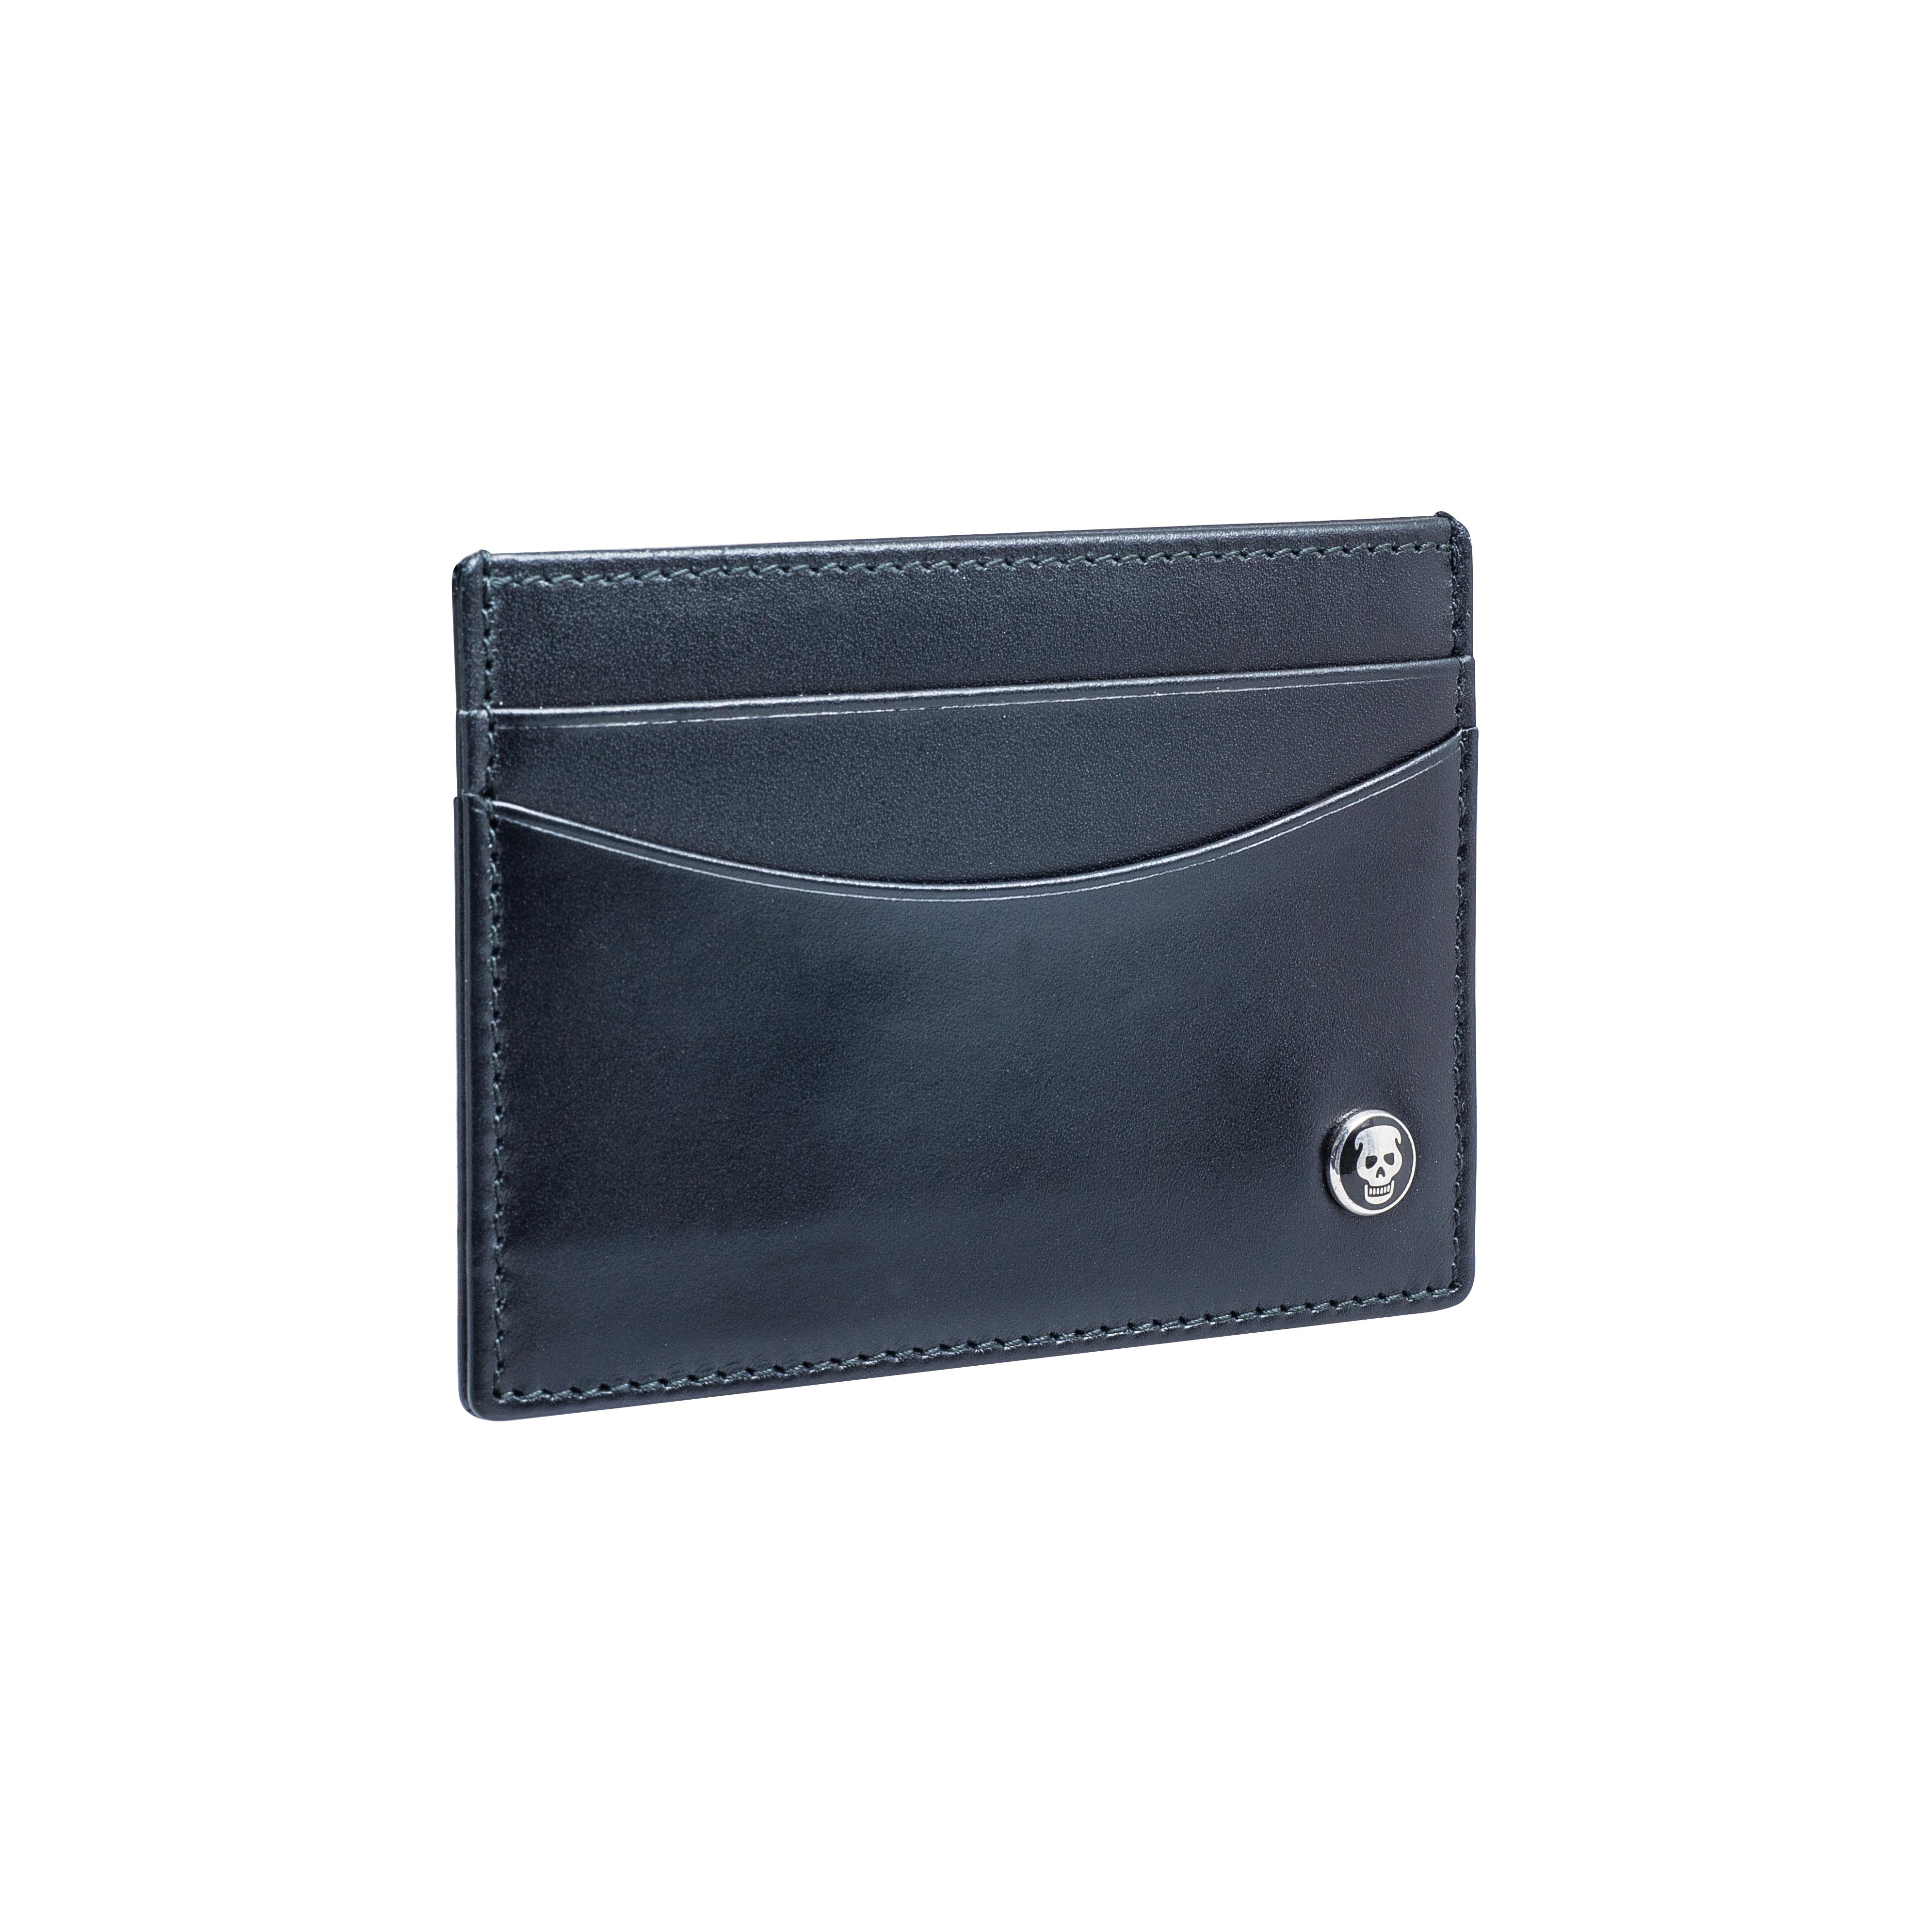 New Deakin & Francis Black Leather Credit Card Wallet